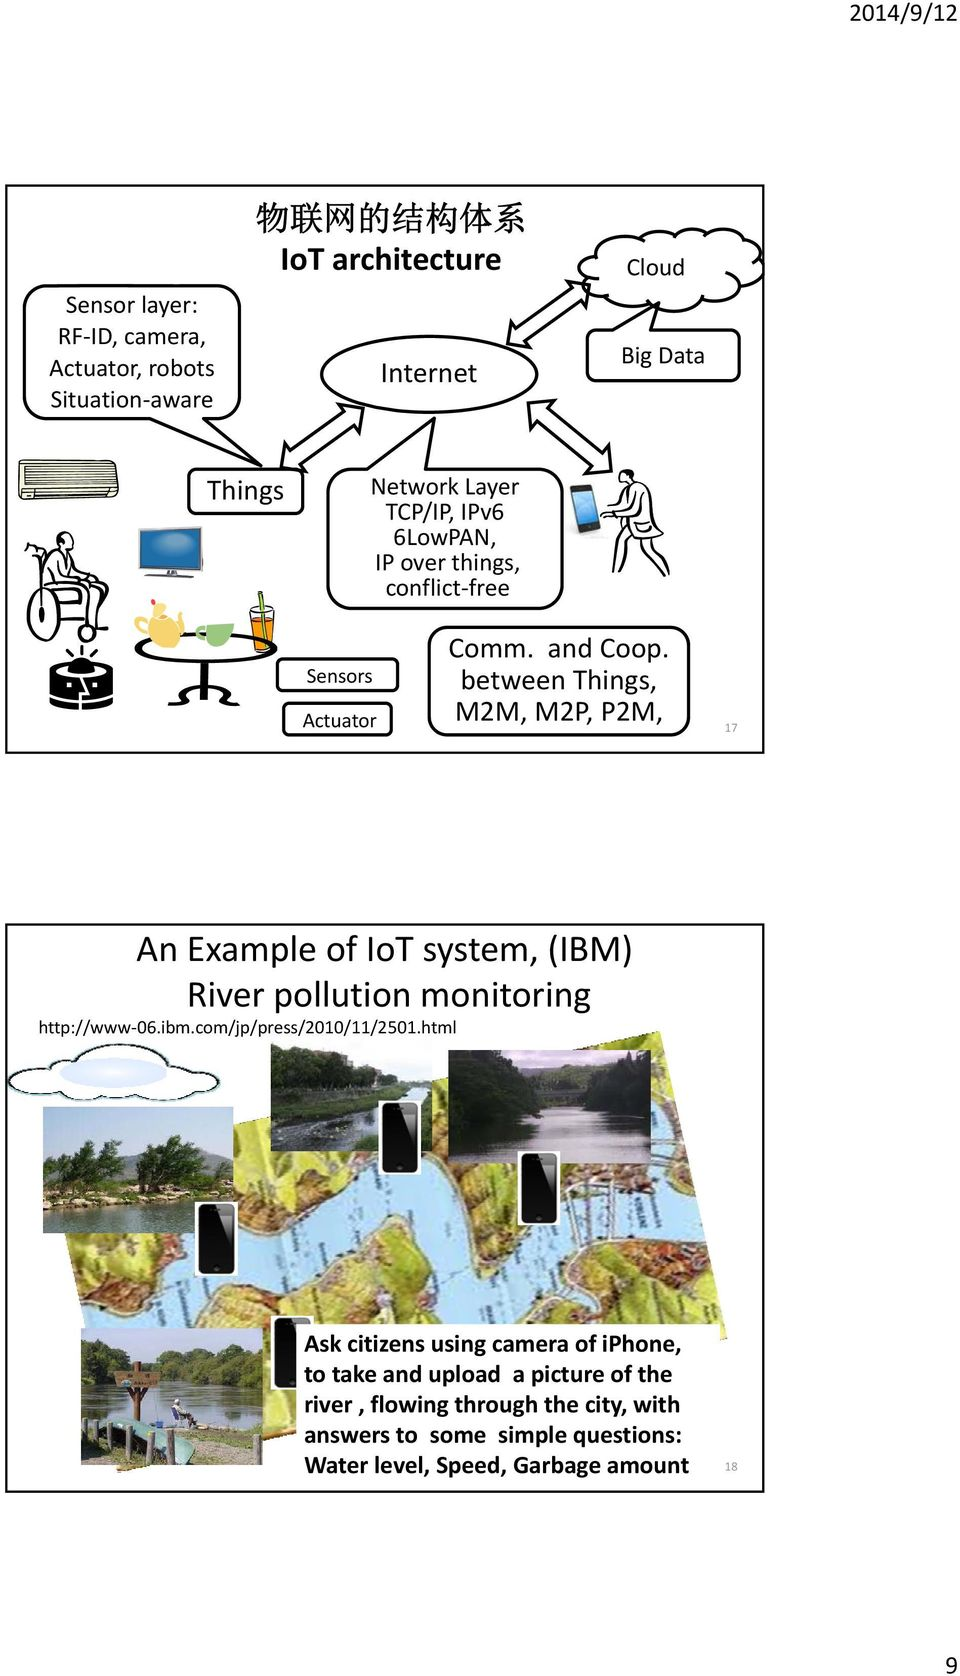 between Things, M2M, M2P, P2M, 17 An Example of IoT system, (IBM) River pollution monitoring http://www 06.ibm.com/jp/press/2010/11/2501.